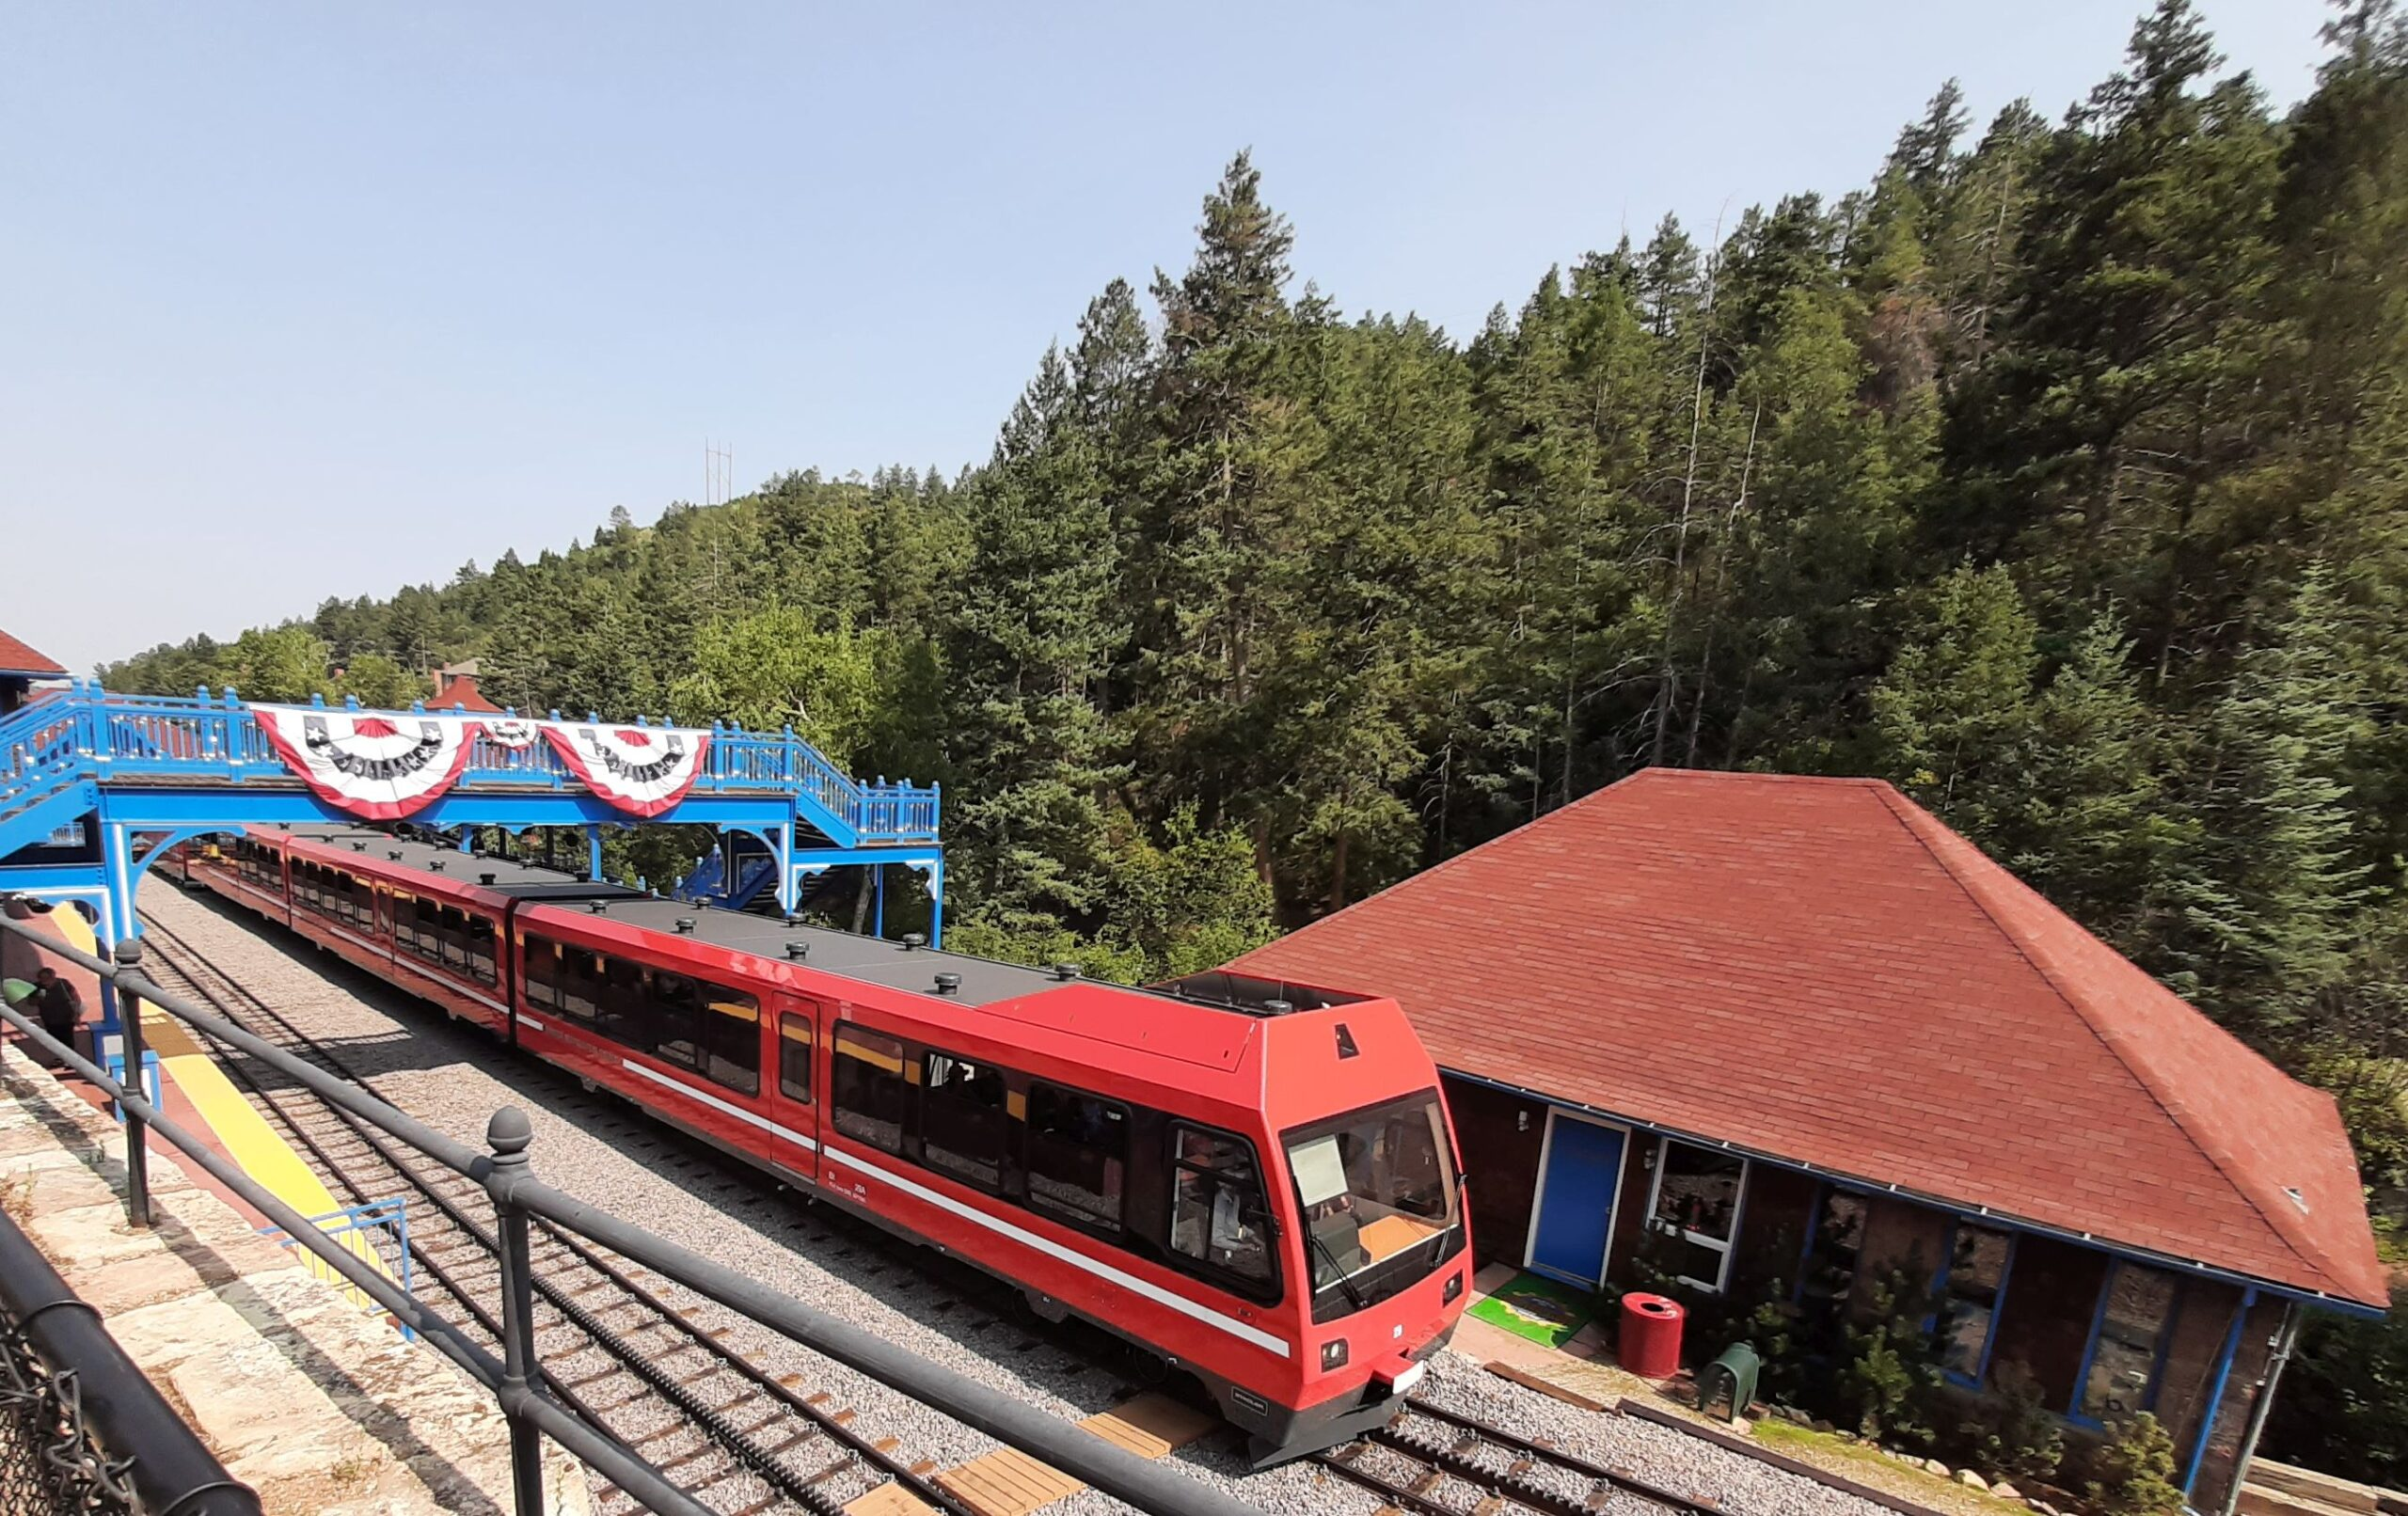 The Pikes Peak Cog Railway takes passengers from Manitou Springs up to the summit of the mountain.